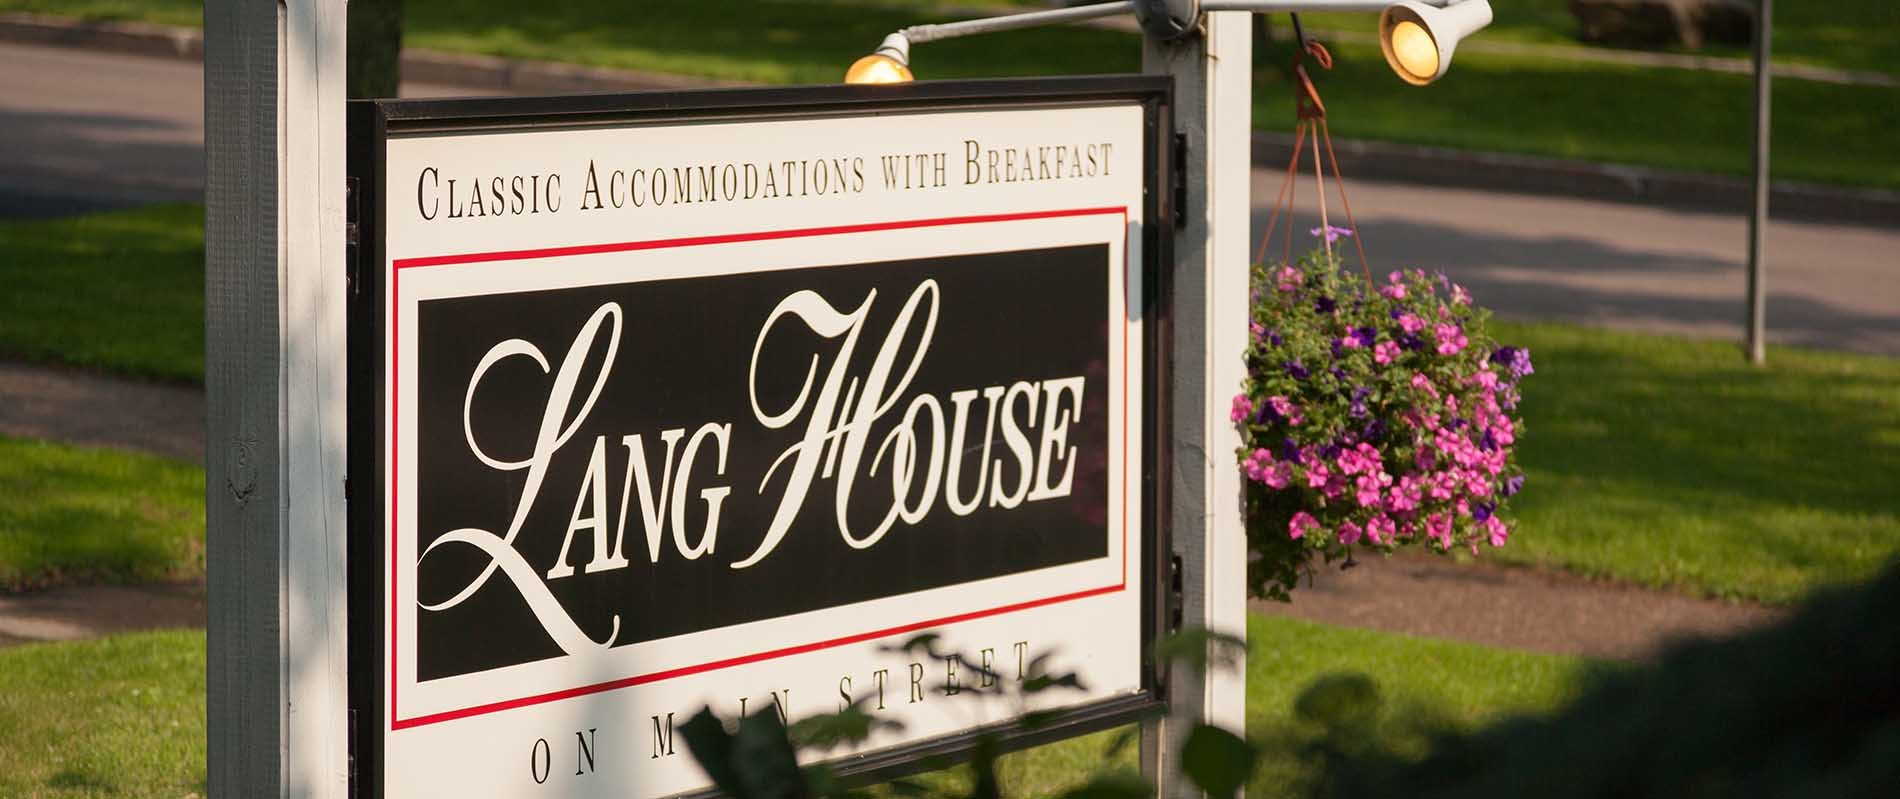 Lang House Inn Sign in Burlington, Vermont